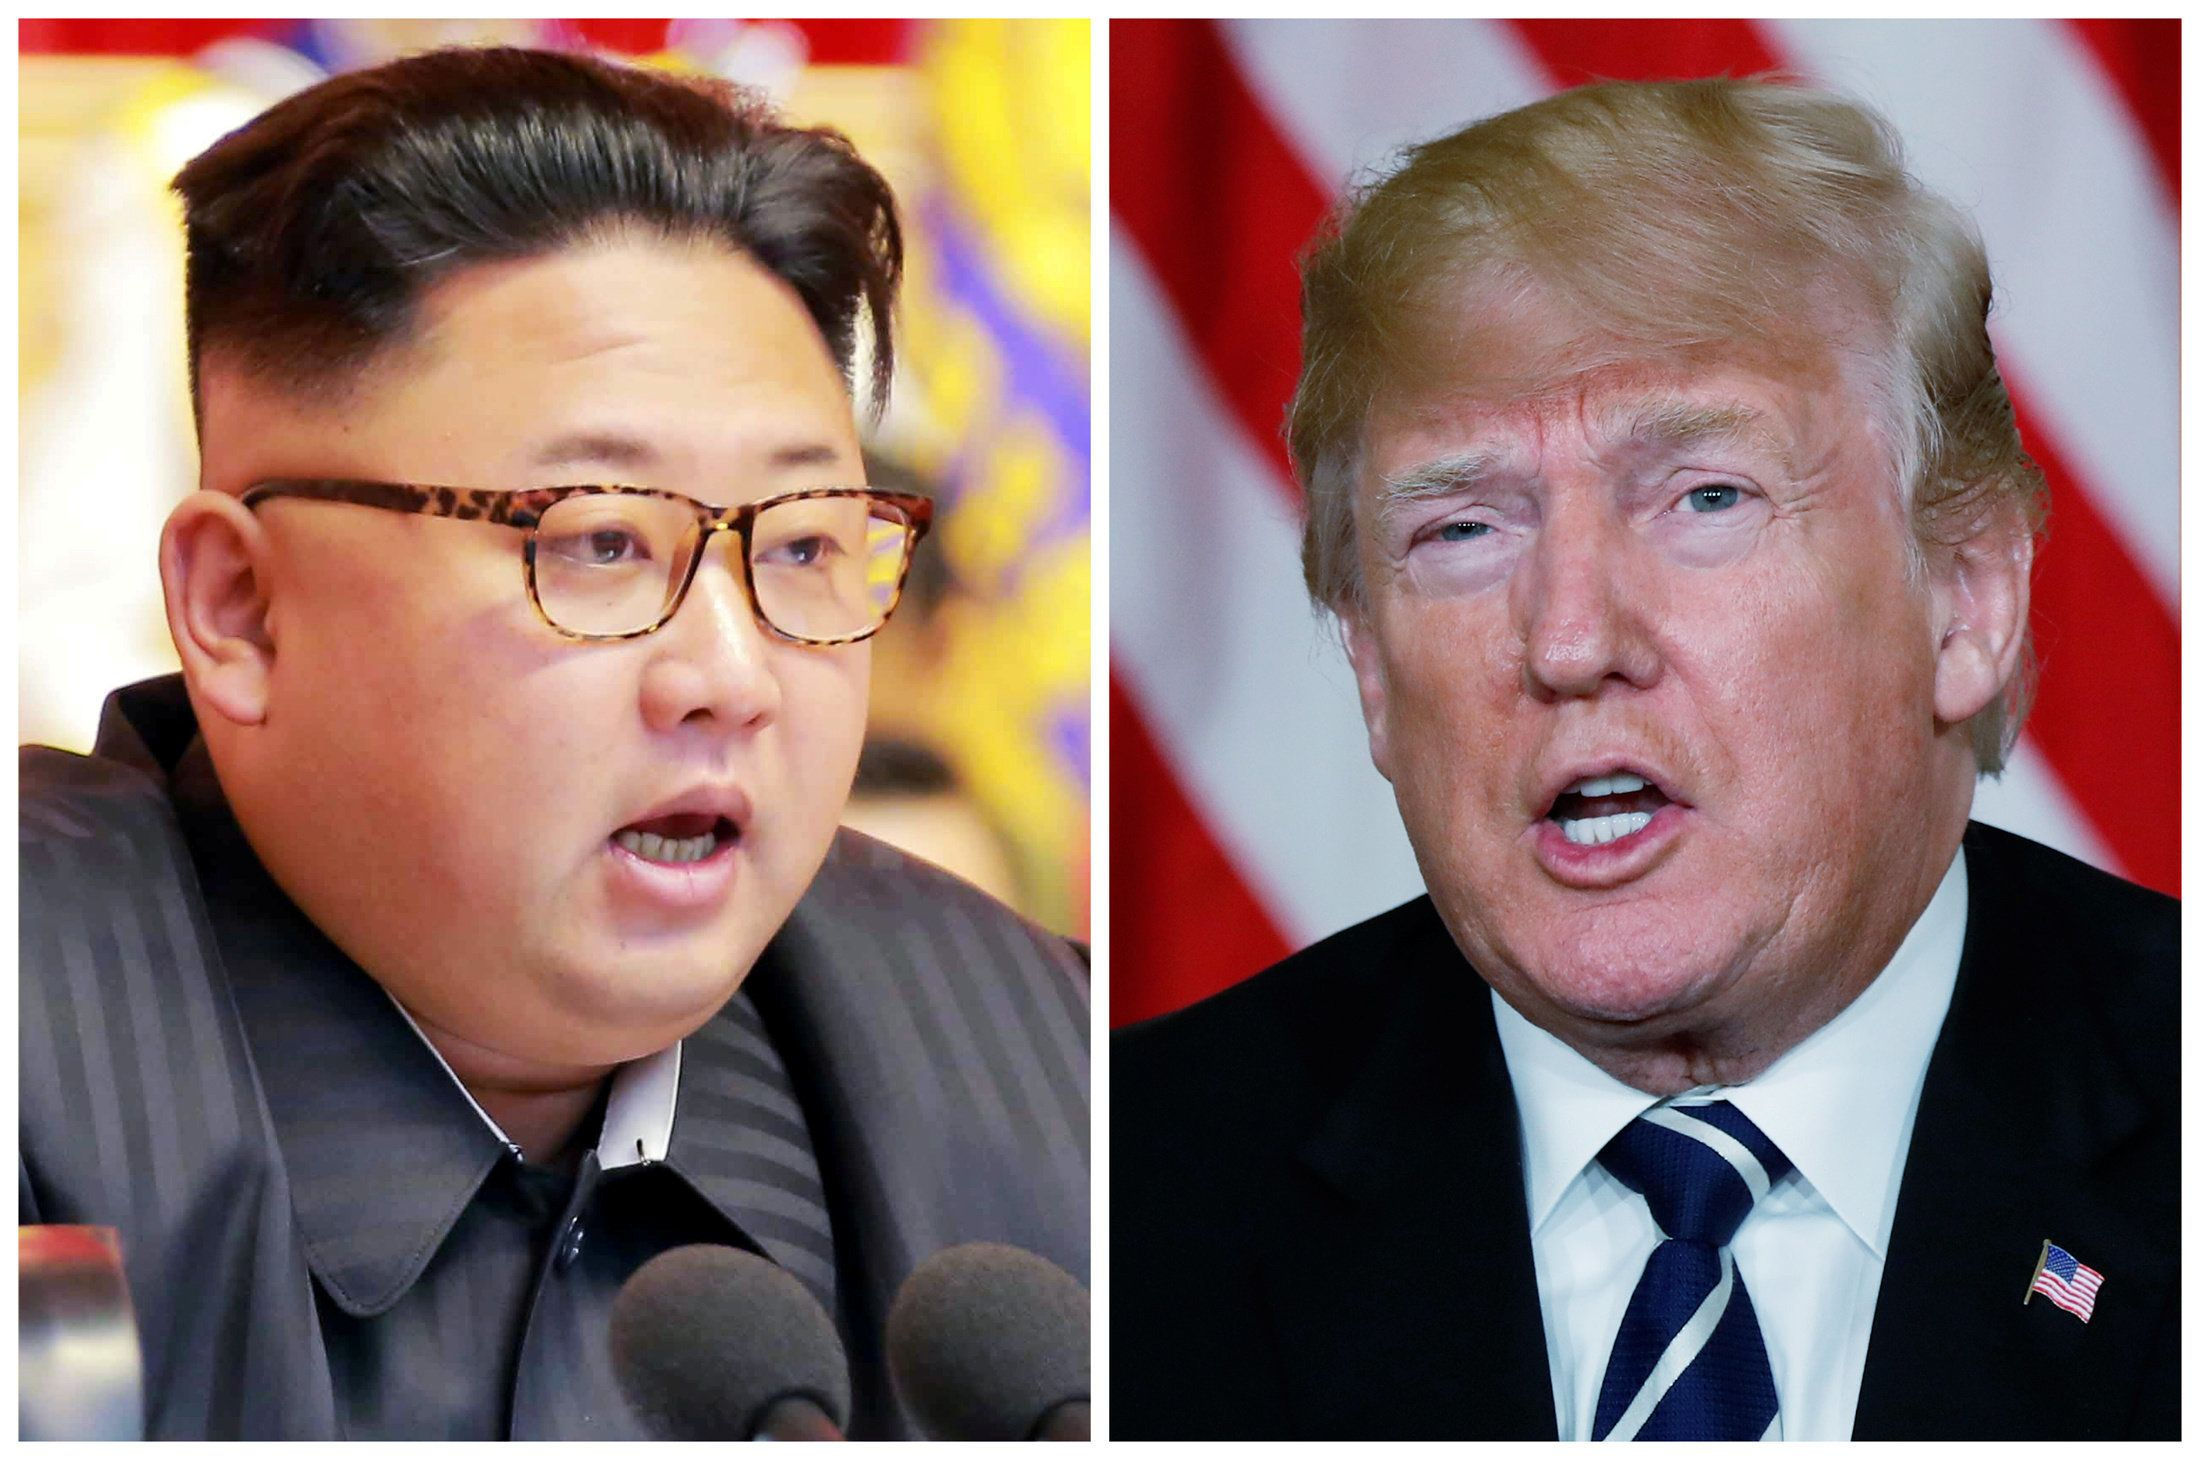 Donald Trump Cancels North Korea Summit With Bizarre Letter To Kim